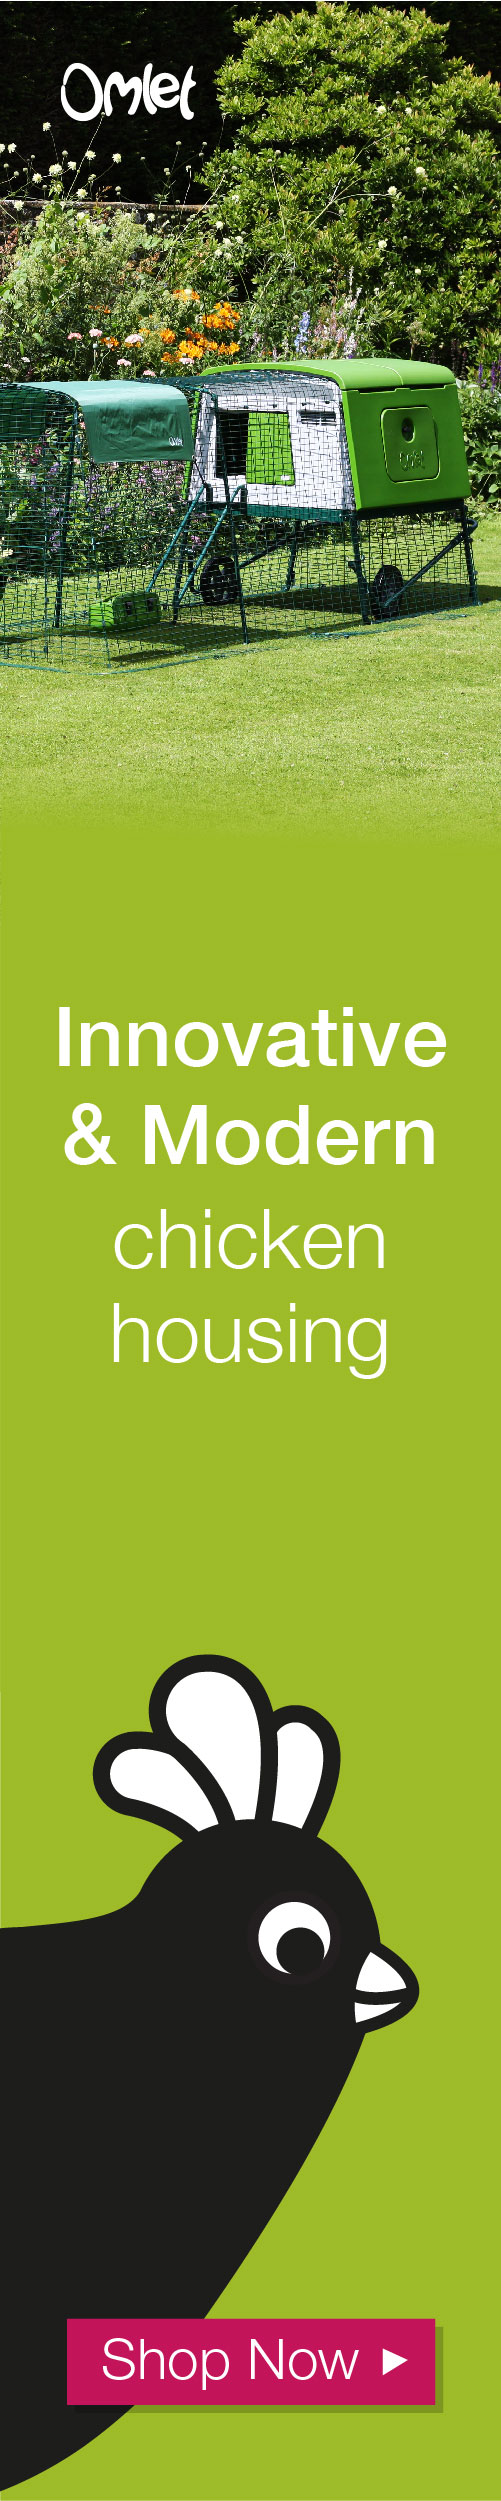 Innovative and modern chicken housing